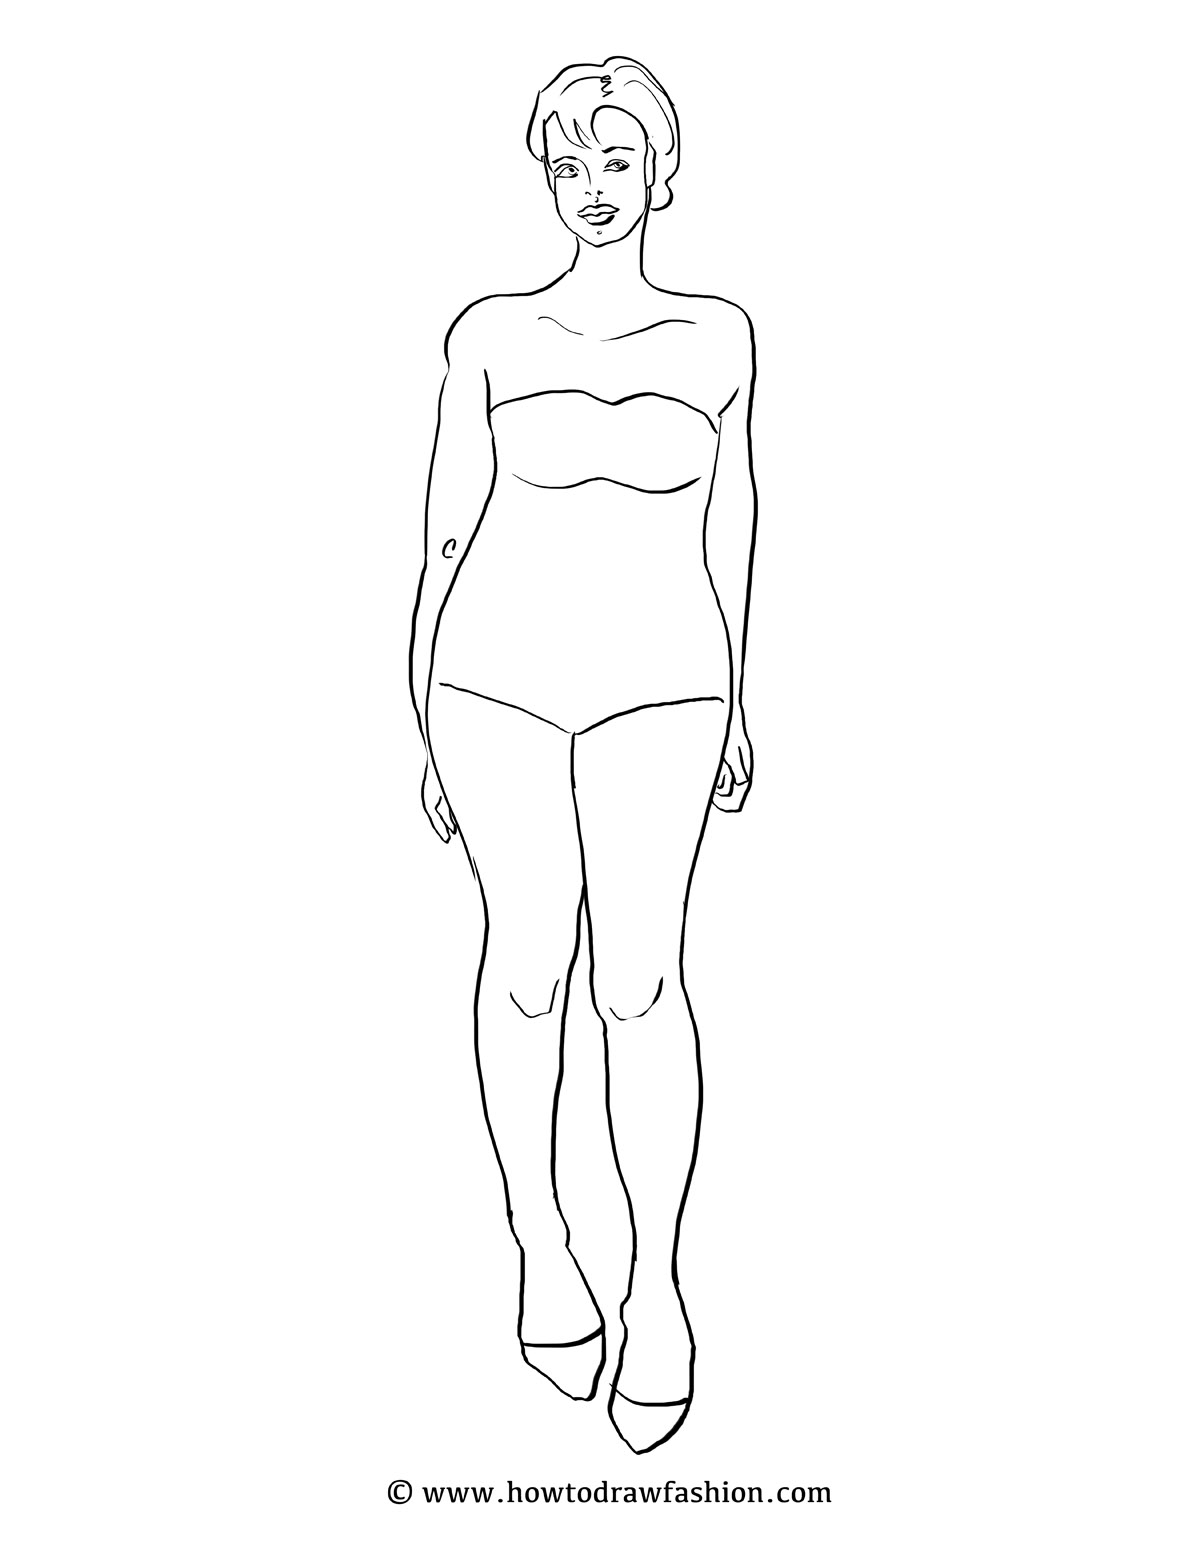 How To Draw Fashion: Fashion Templates (Women)